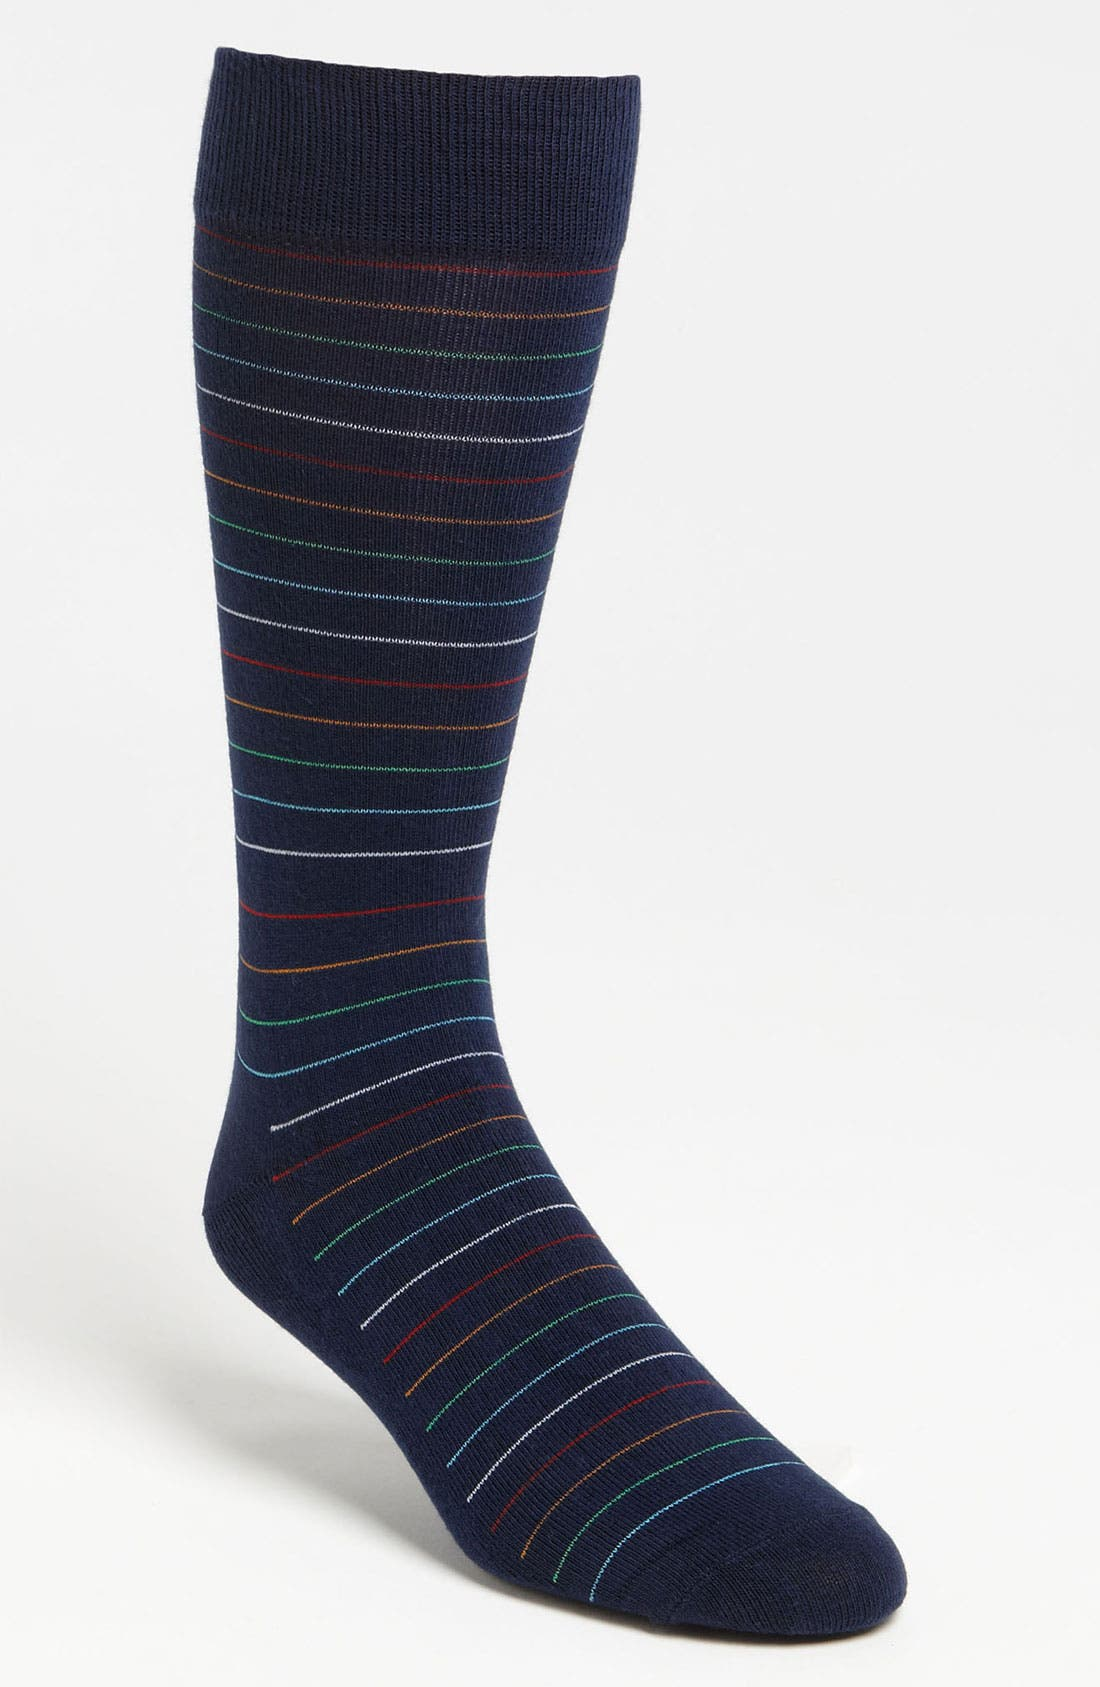 Alternate Image 1 Selected - Happy Socks Patterned Combed Cotton Blend Socks